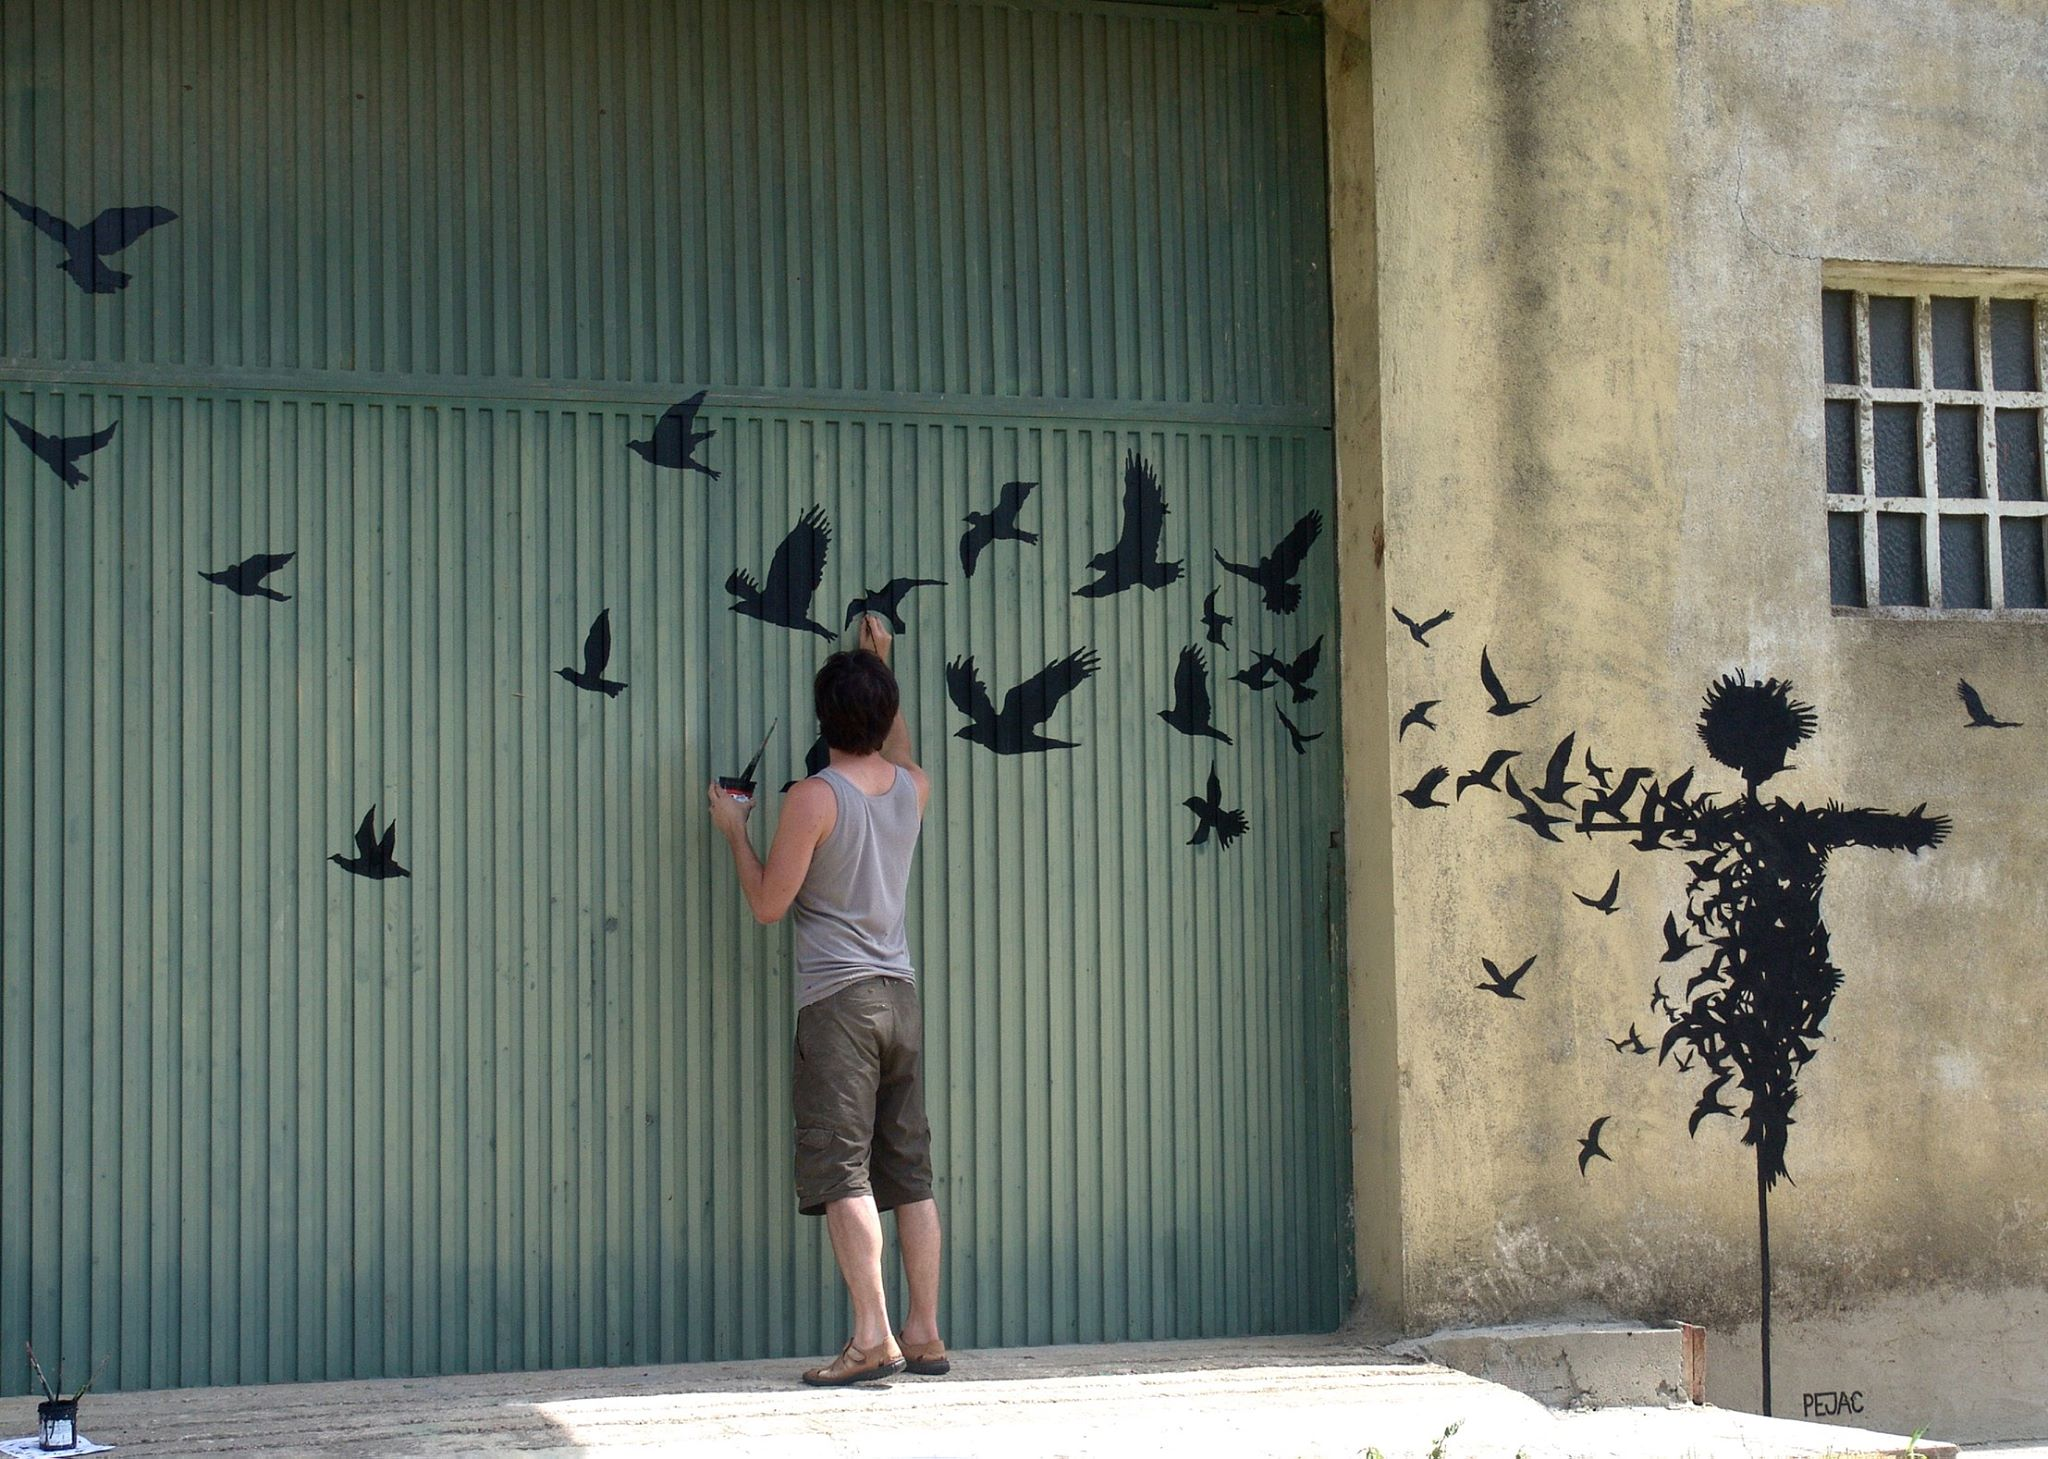 Street Art by Pejac in Salamanca, Spain 2